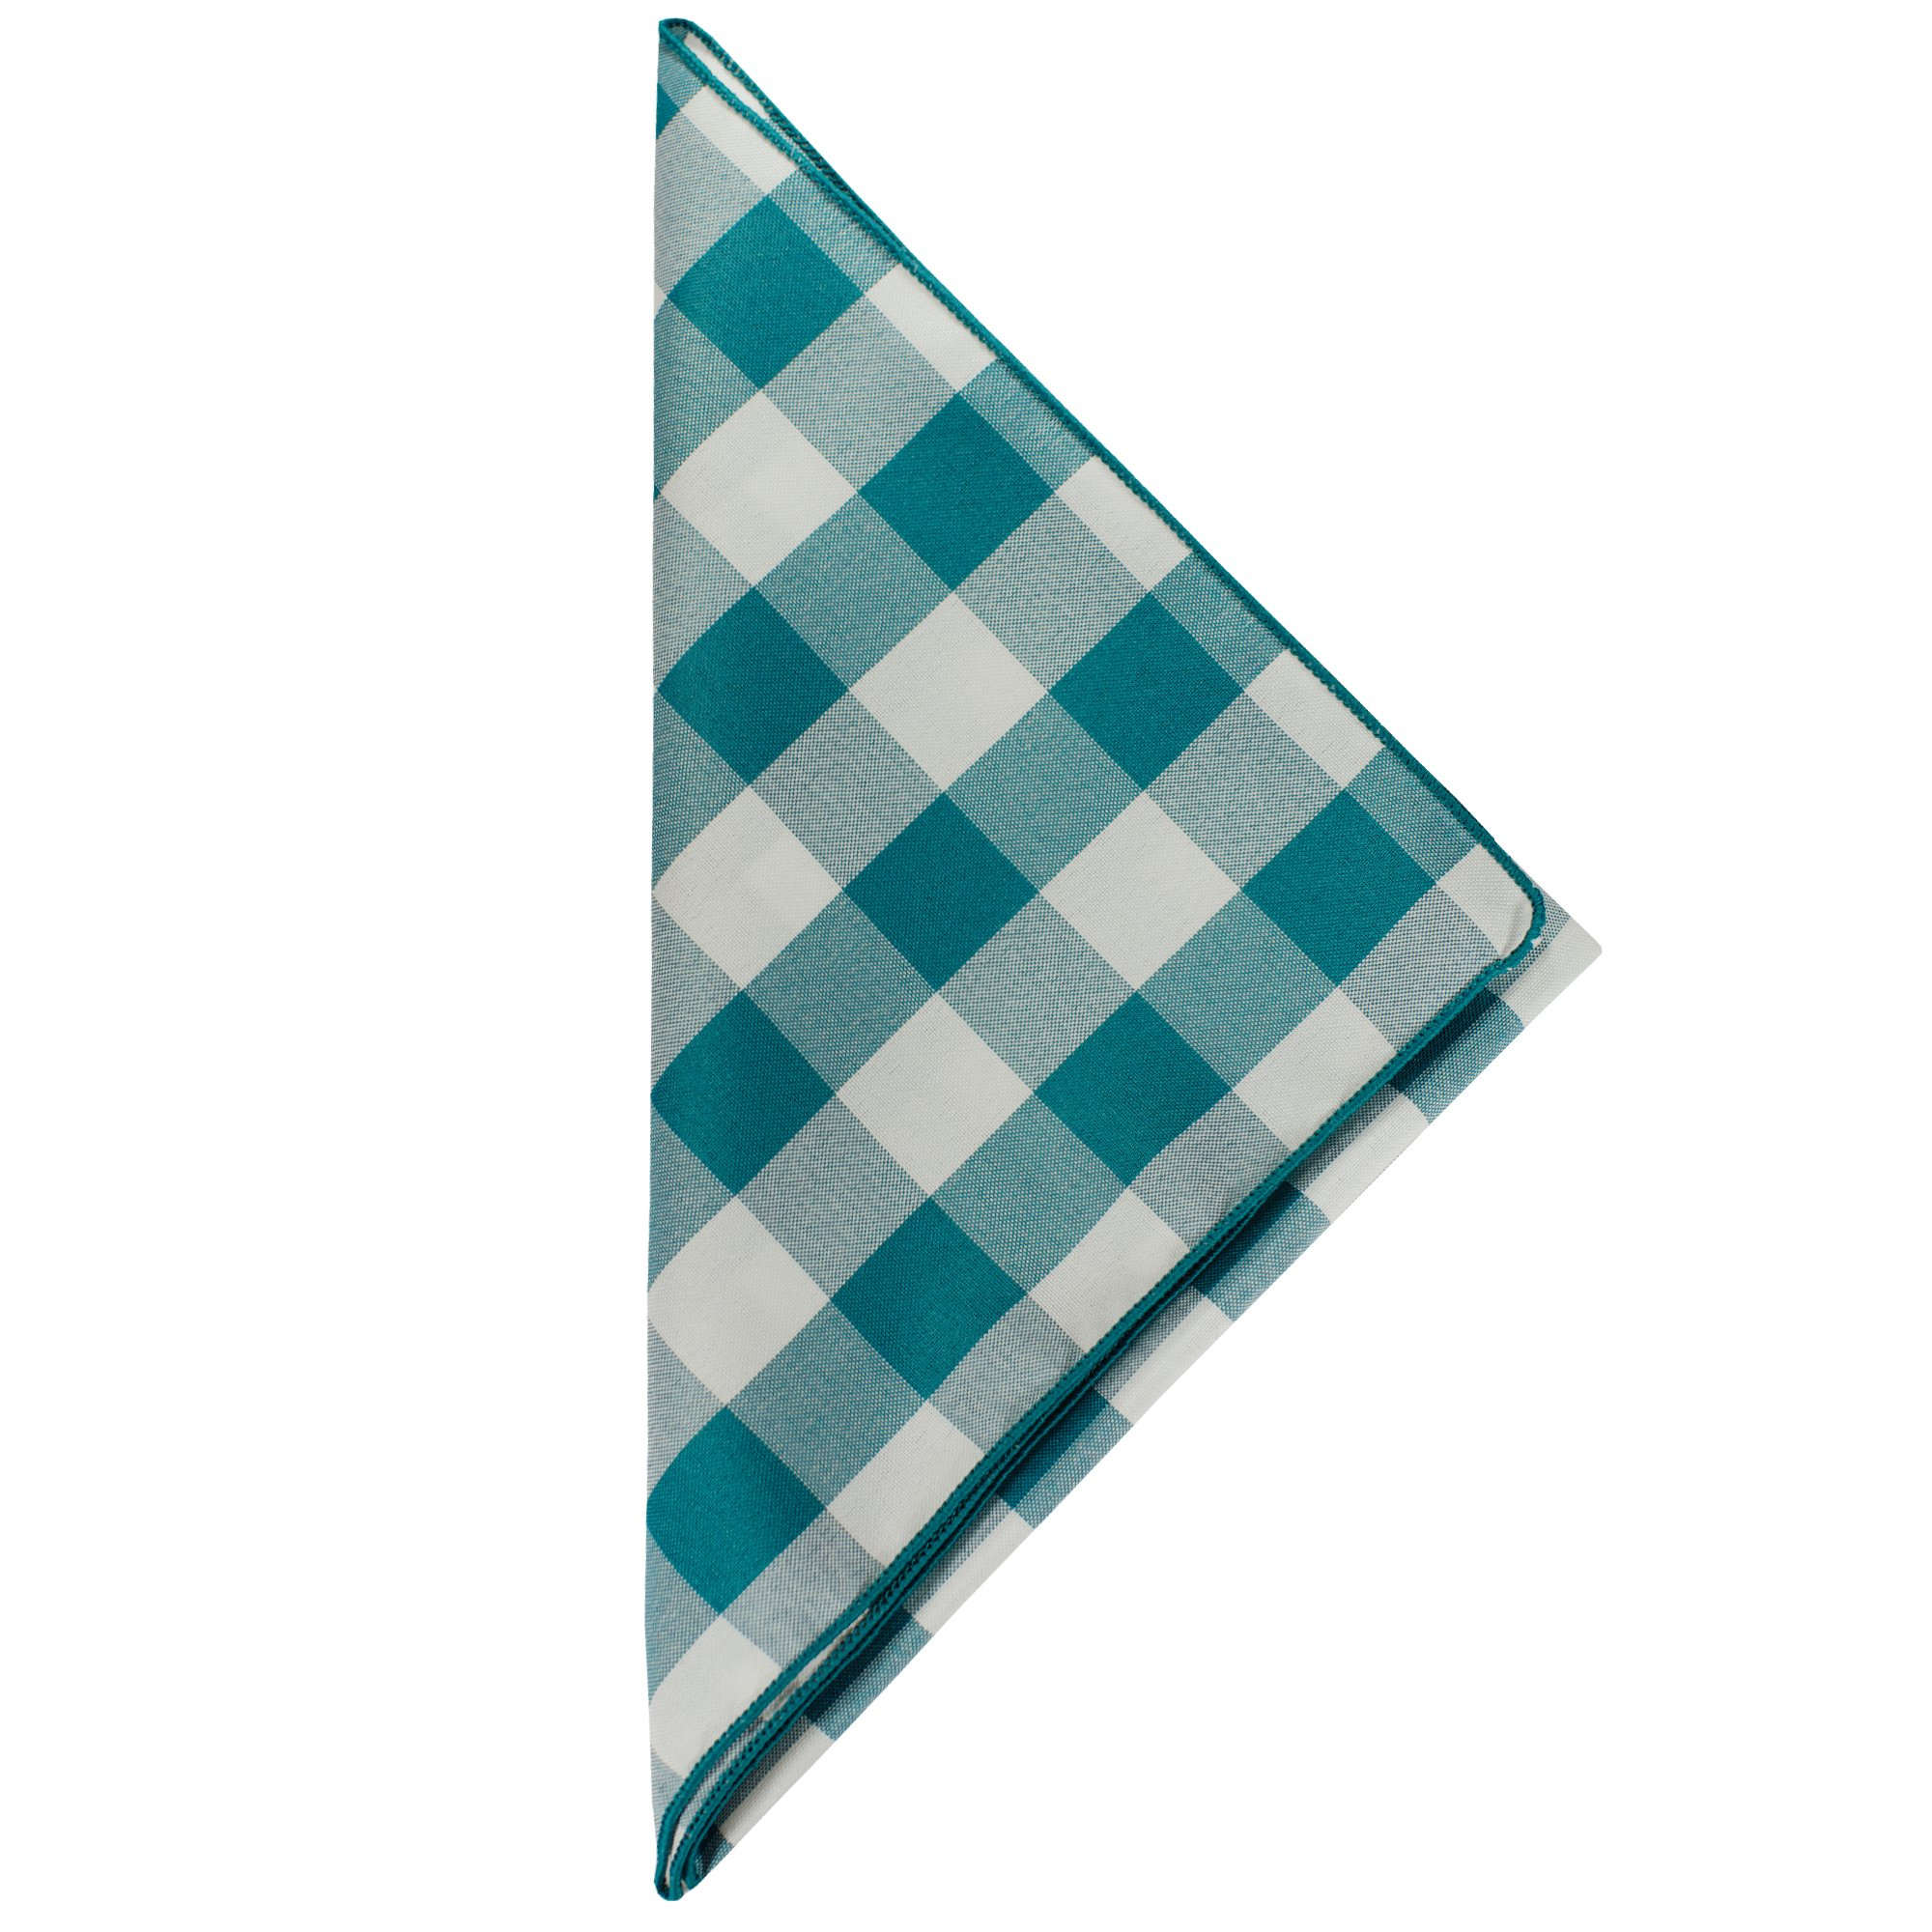 Ultimate Textile -10 Dozen- 10 x 10-Inch Polyester Checkered Cloth Cocktail Napkins, Teal and White